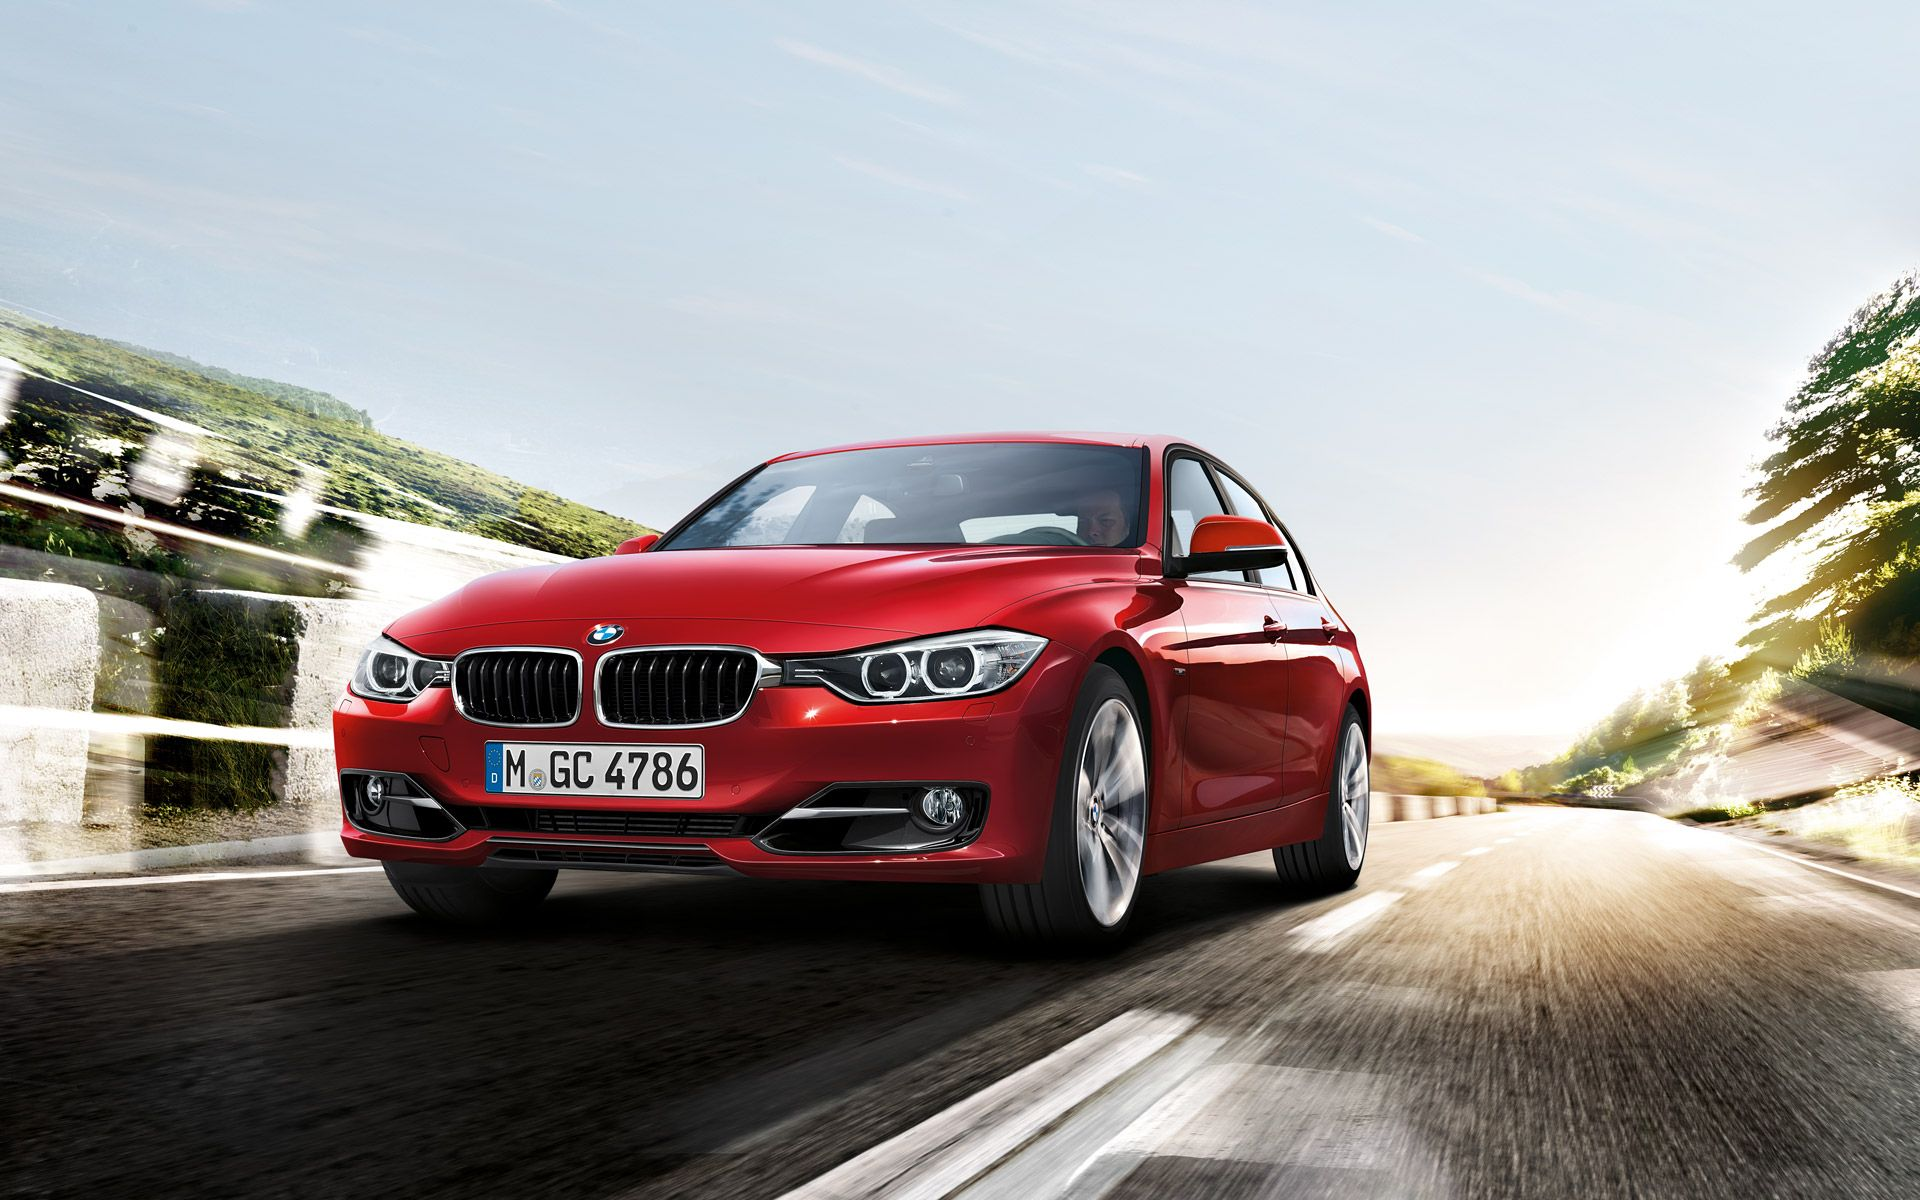 Bmw 320i Wallpapers Top Free Bmw 320i Backgrounds